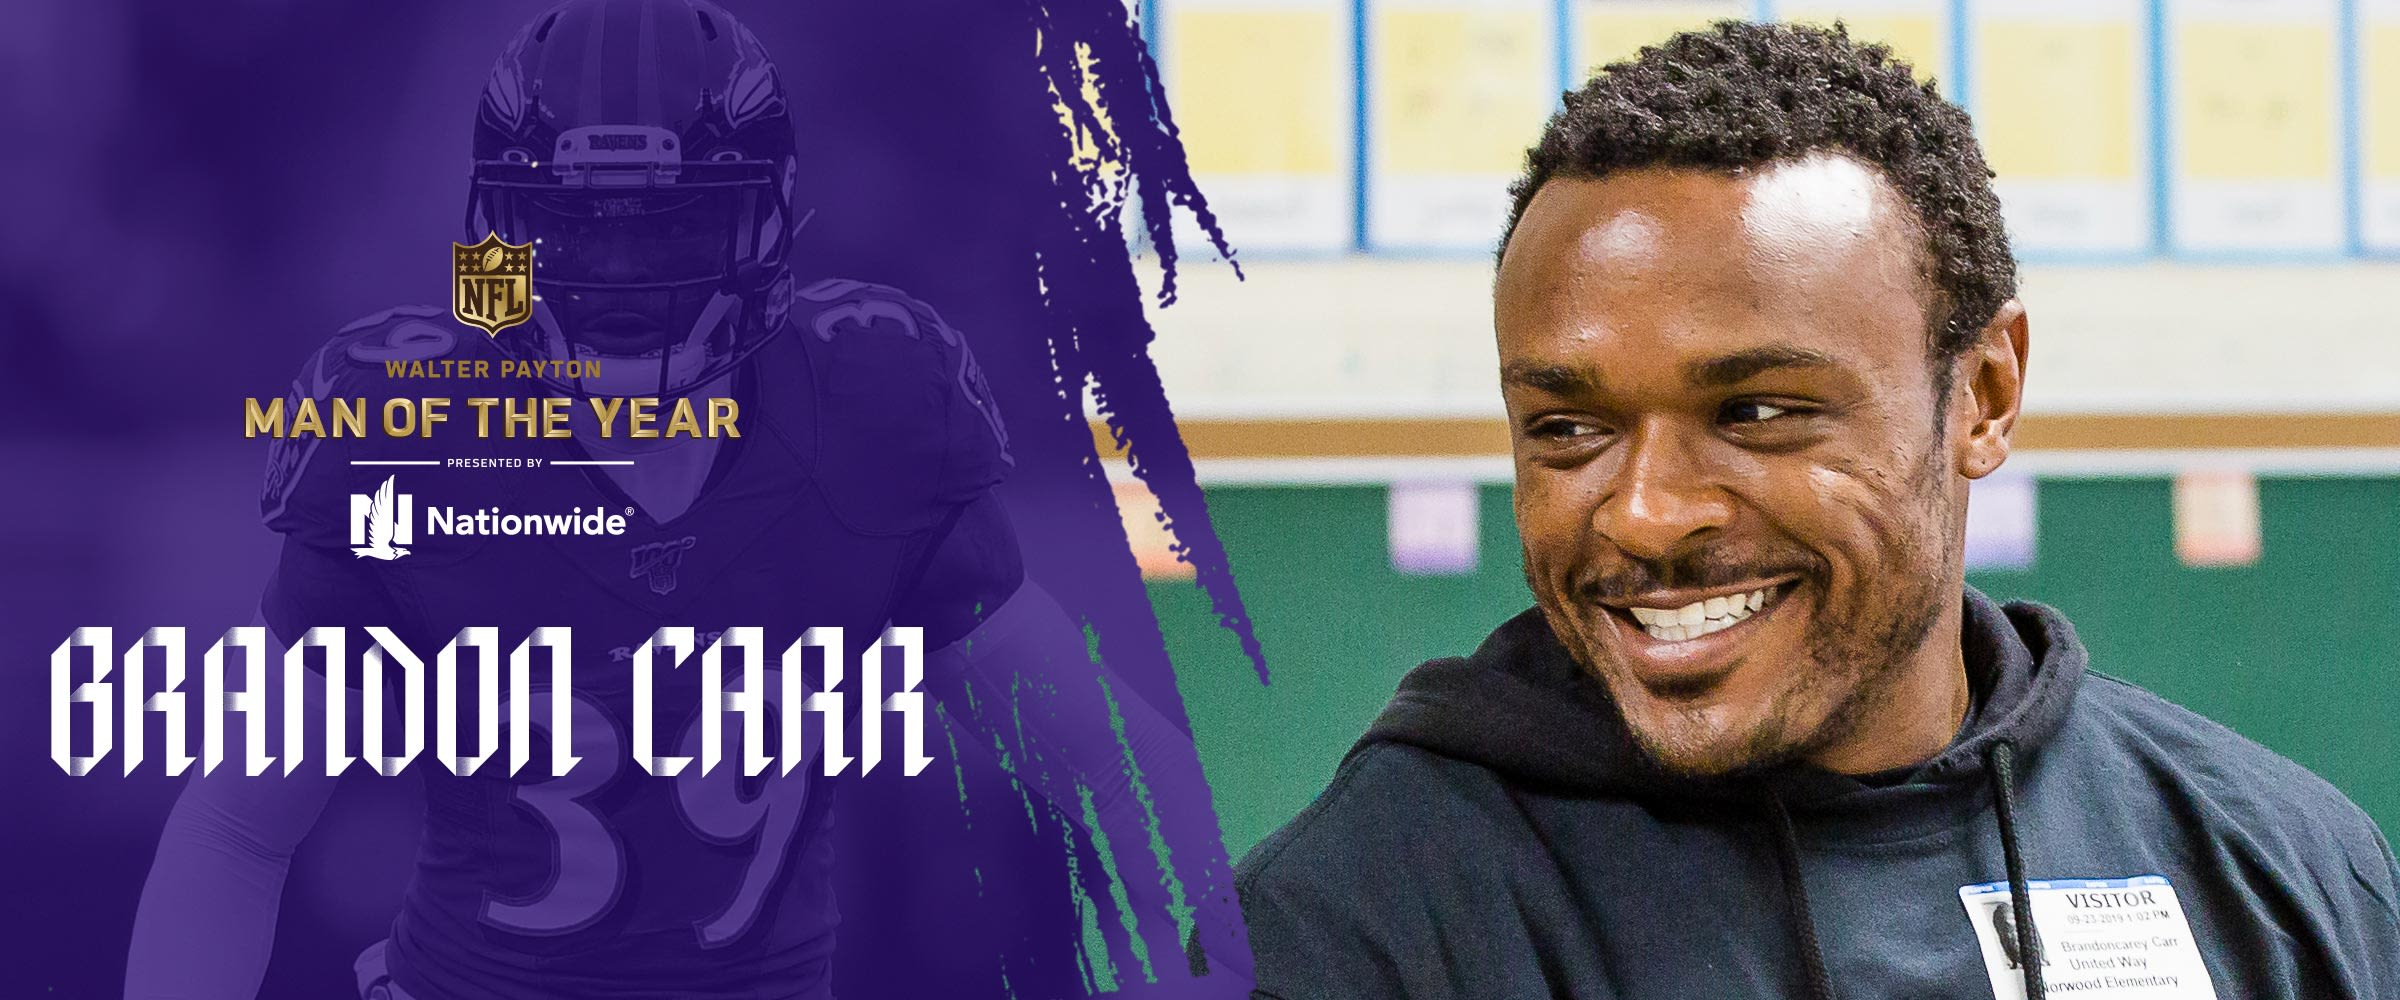 Walter Payton Man of the Year 2019: Brandon Carr